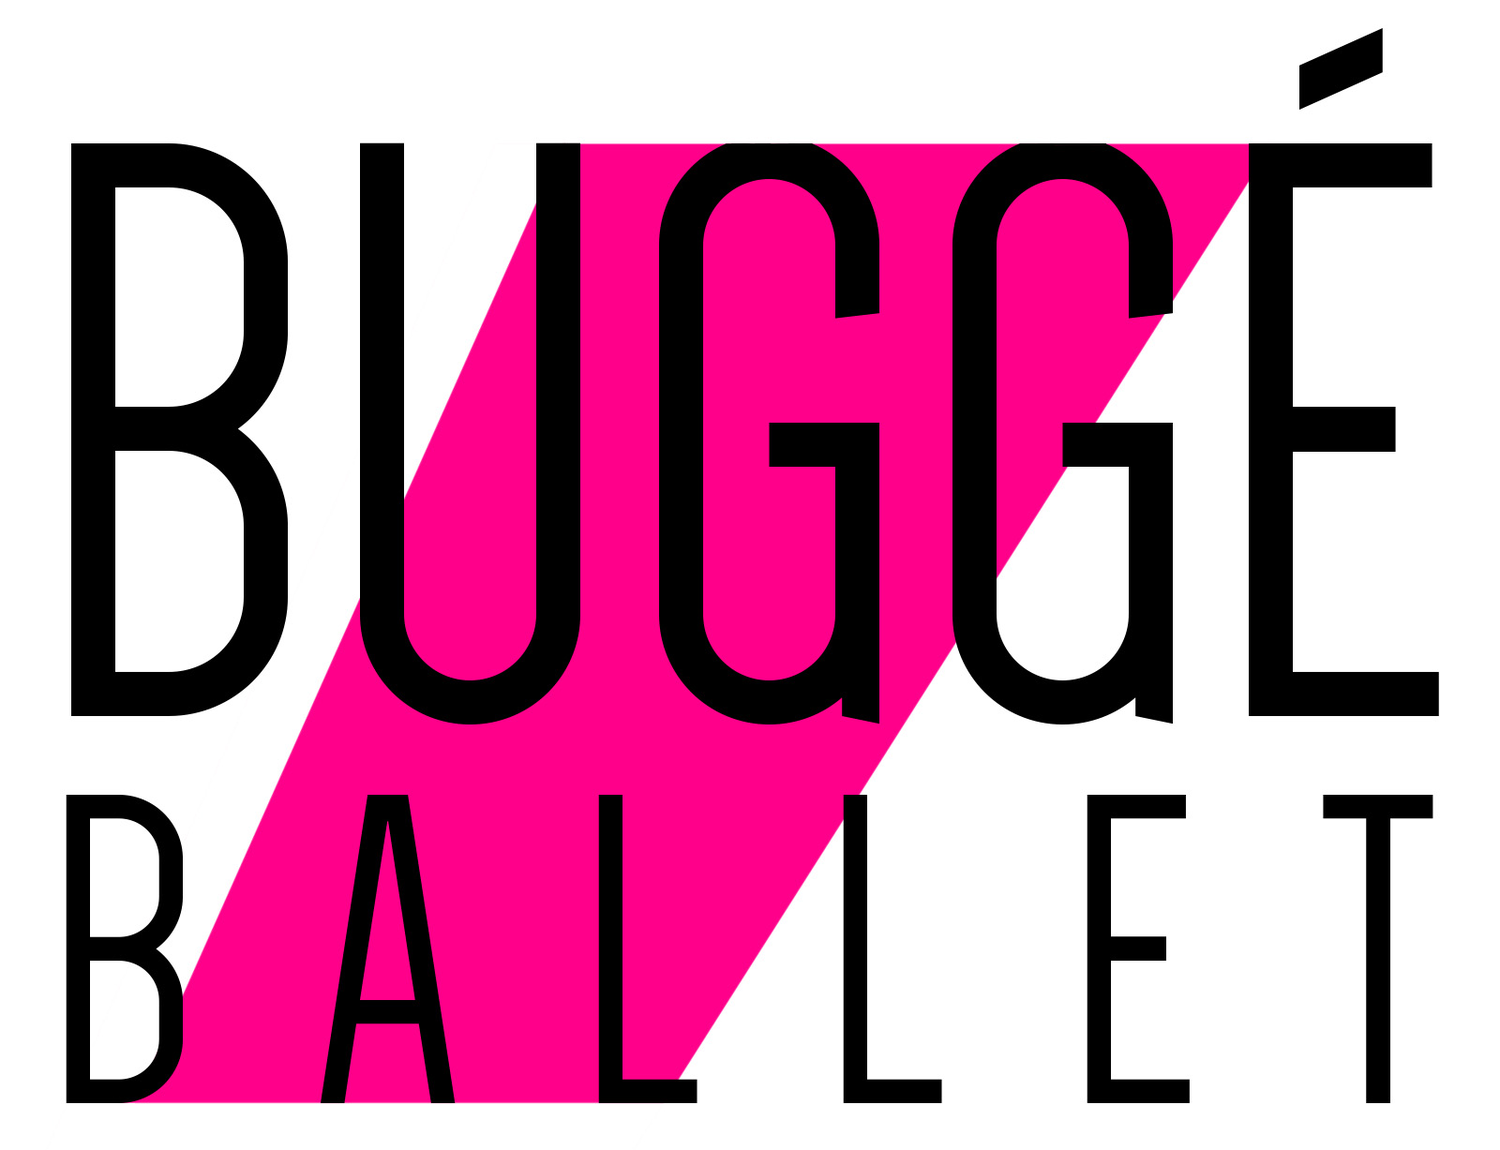 Welcome to Buggé Ballet